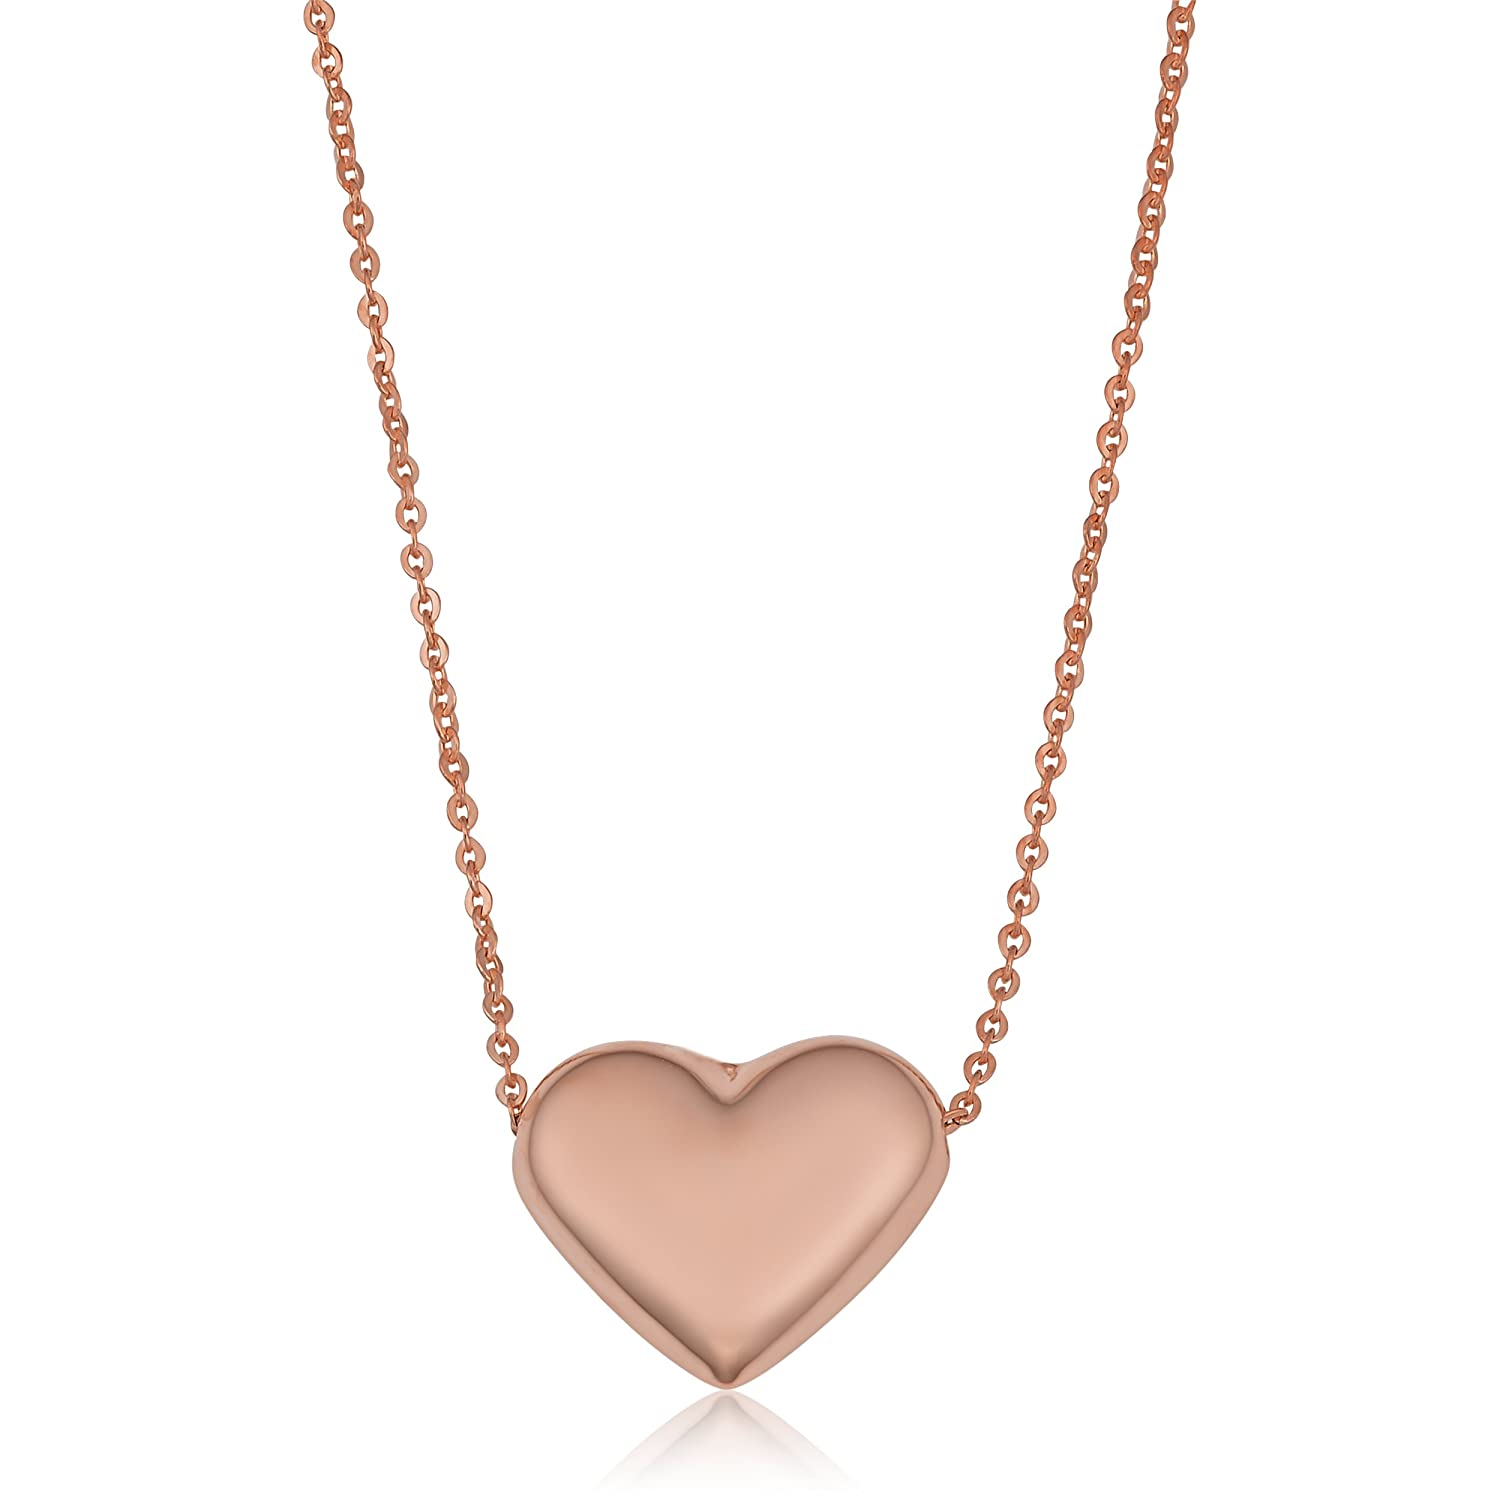 9f6a484a566c Amazon.com  14k Rose Gold Heart Necklace (18 inch)  Jewelry